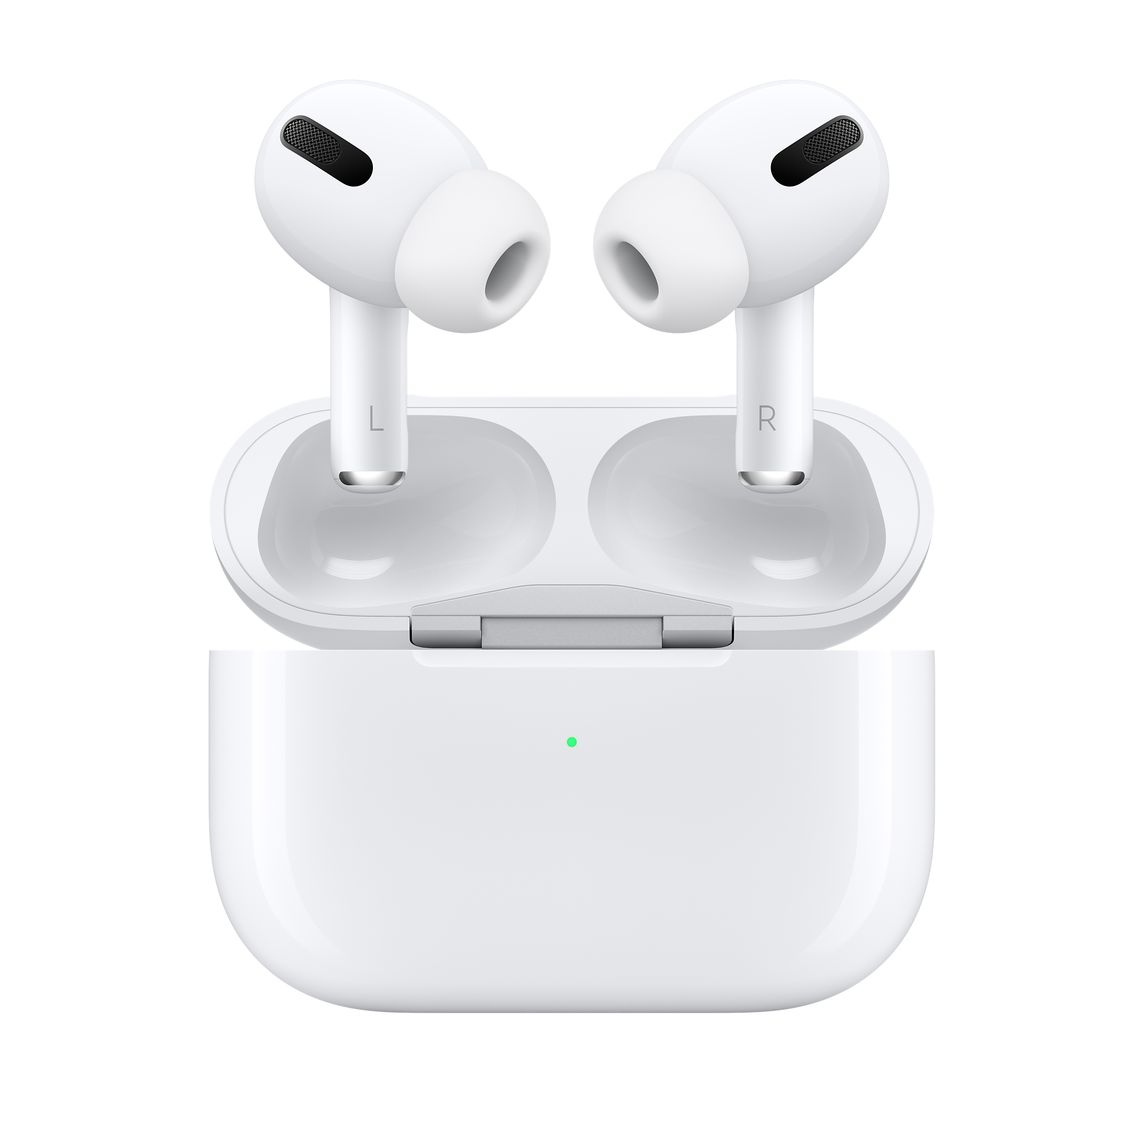 https://store.storeimages.cdn-apple.com/4982/as-images.apple.com/is/MWP22?wid=1144&hei=1144&fmt=jpeg&qlt=80&op_usm=0.5,0.5&.v=1572990352299